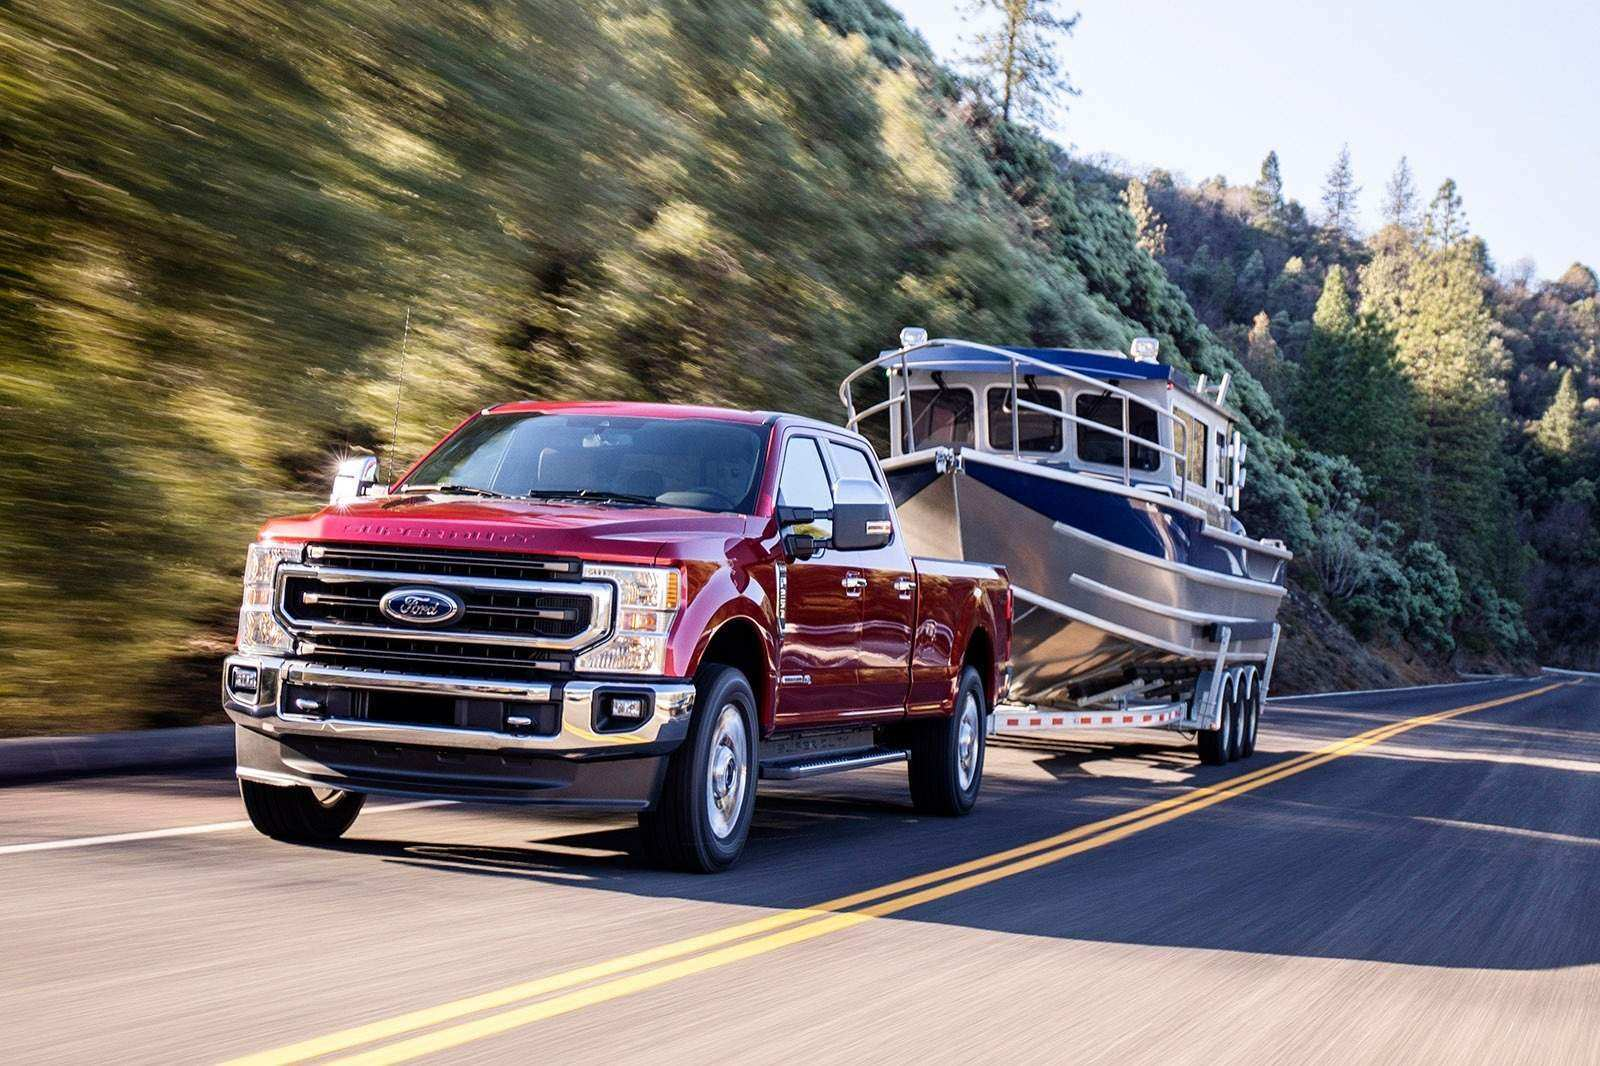 21 All New 2019 Ford F250 Diesel Rumored Announced Ratings